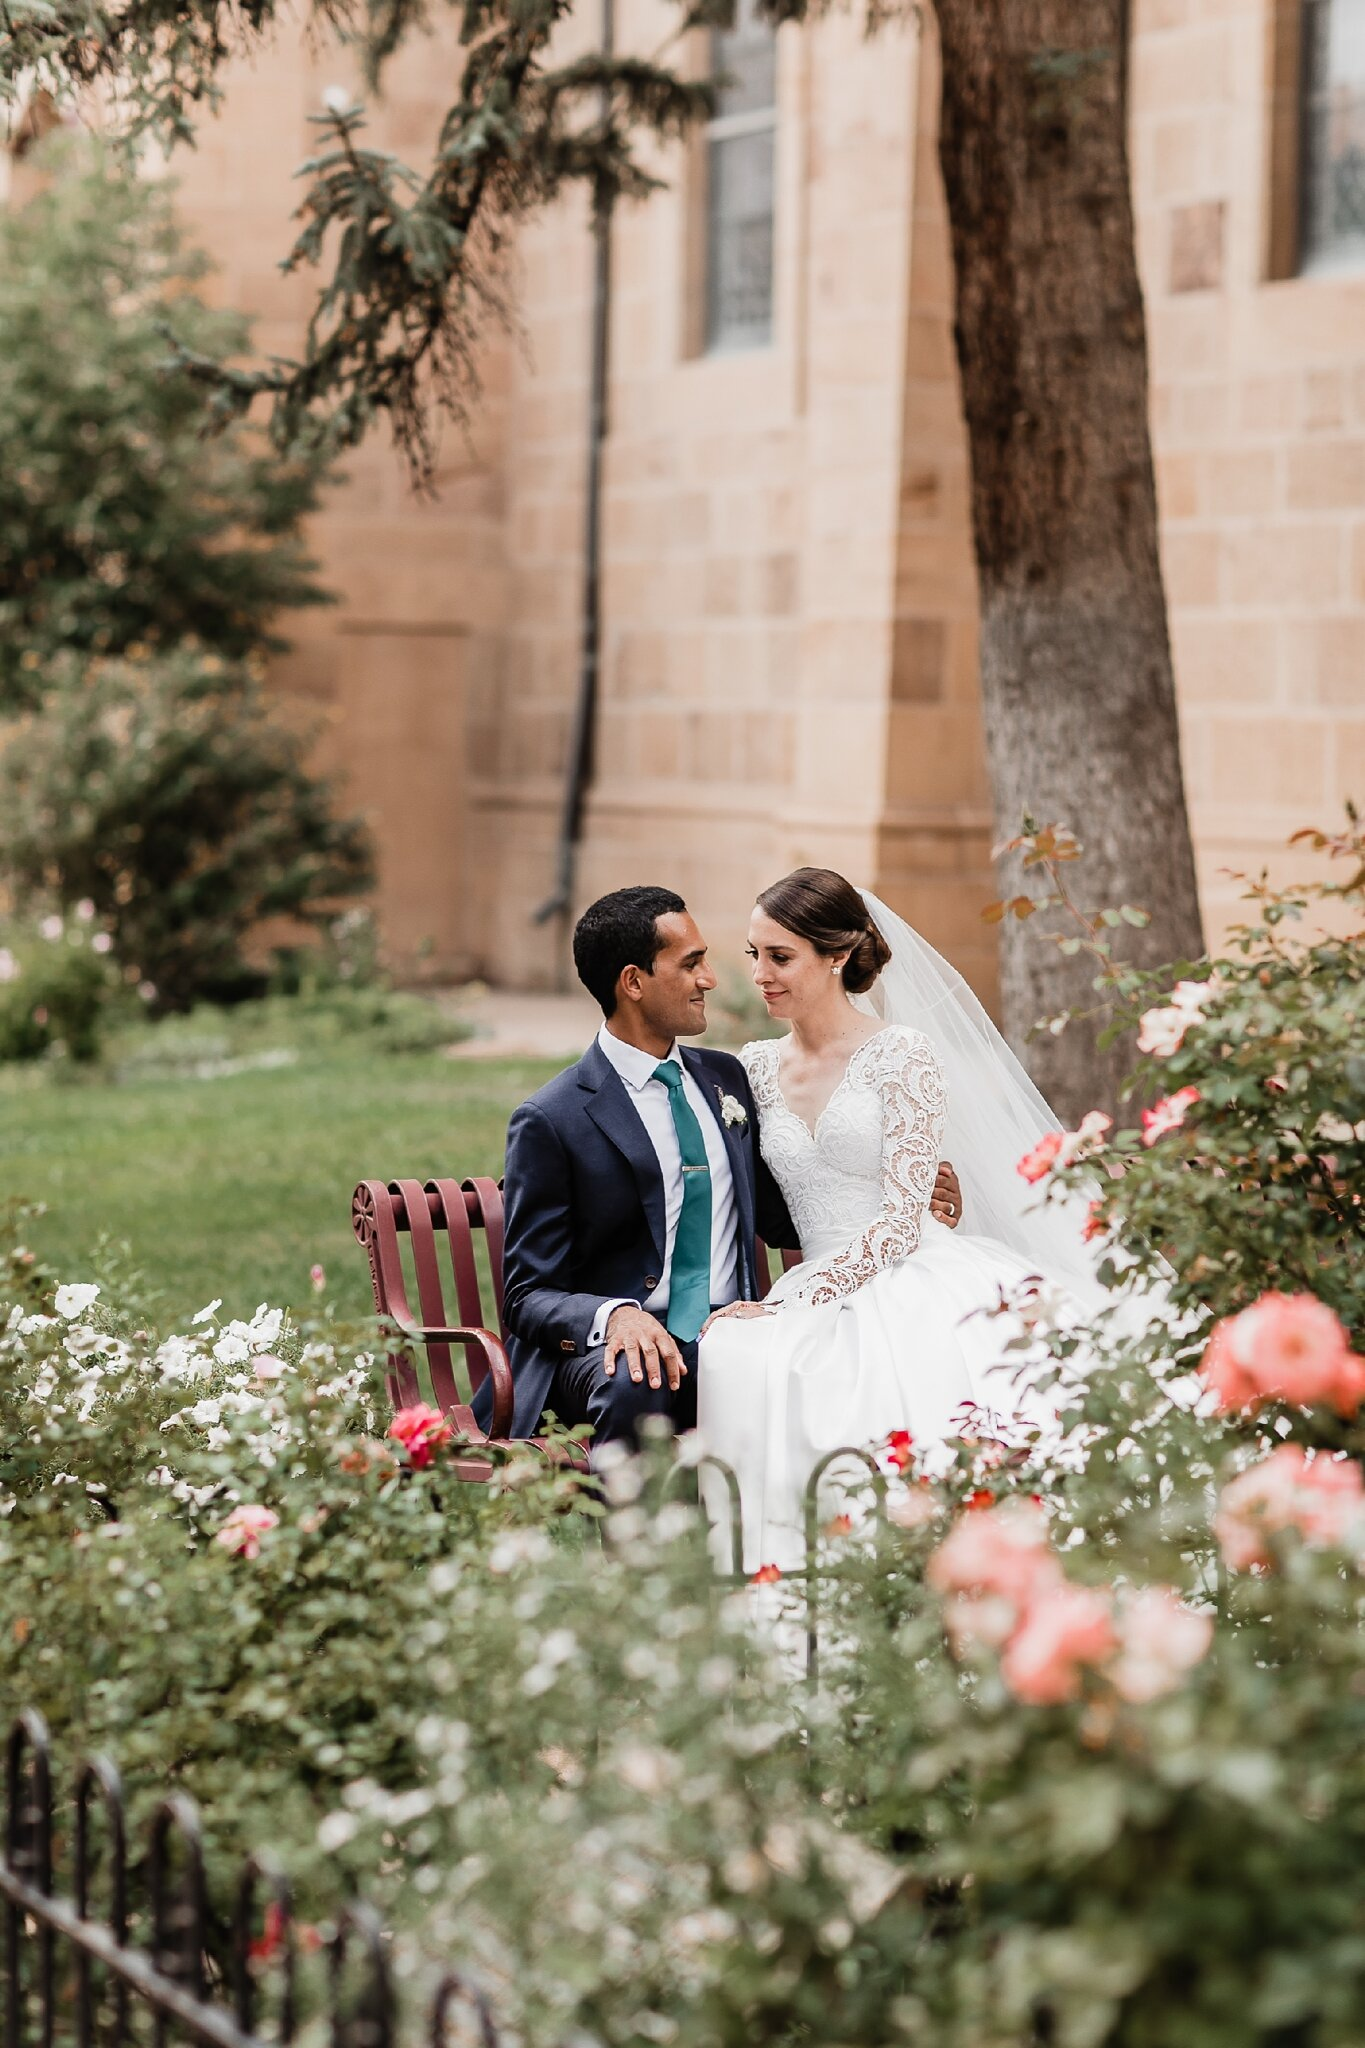 Alicia+lucia+photography+-+albuquerque+wedding+photographer+-+santa+fe+wedding+photography+-+new+mexico+wedding+photographer+-+new+mexico+wedding+-+hindu+wedding+-+catholic+wedding+-+multicultural+wedding+-+santa+fe+wedding_0088.jpg